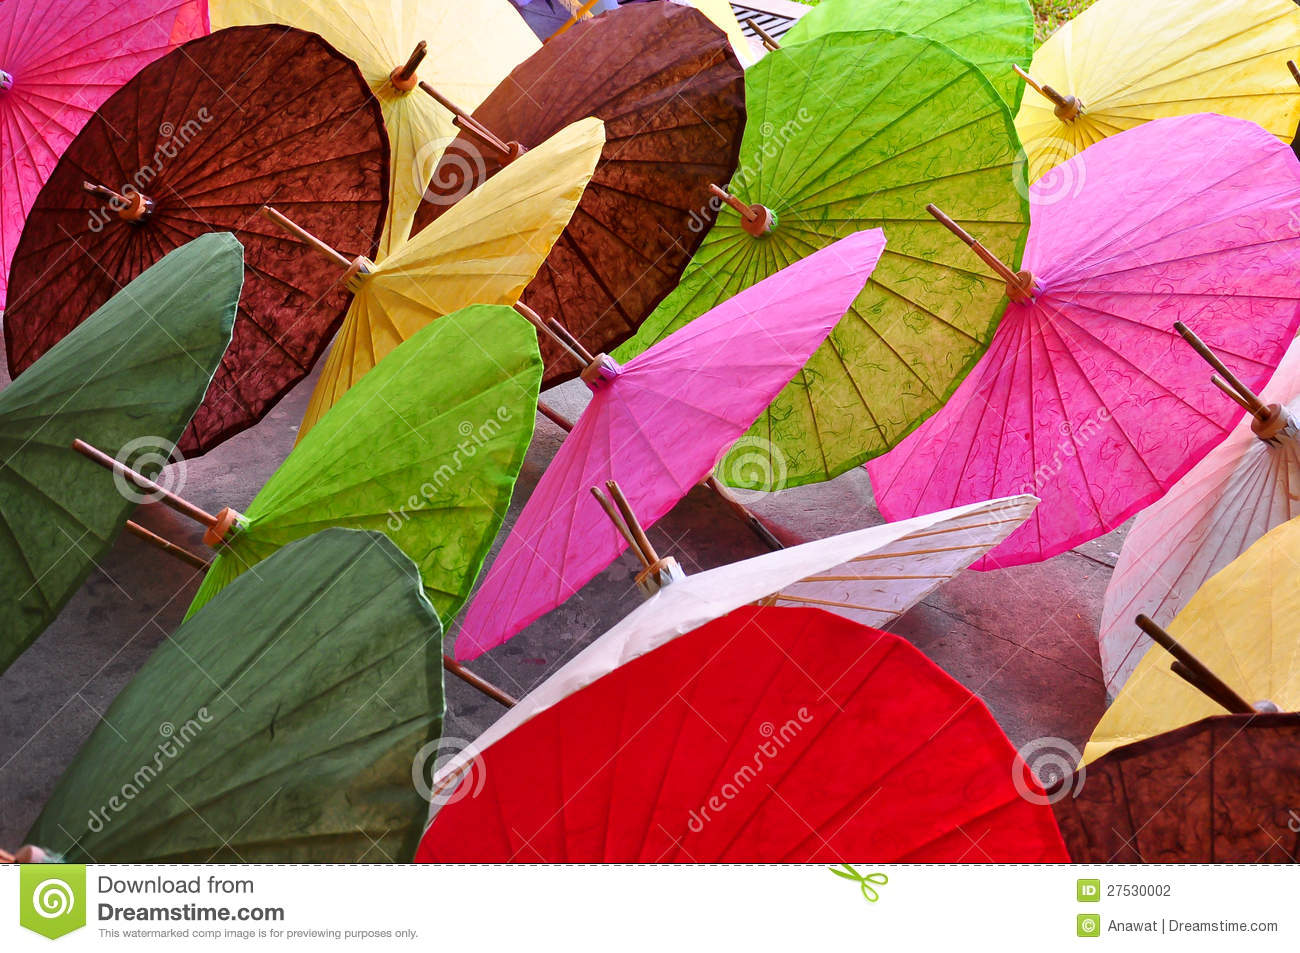 Handicraft Paper For Umbrella Handicraft Items Made Of Paper Stock Photo - Image: 27530040